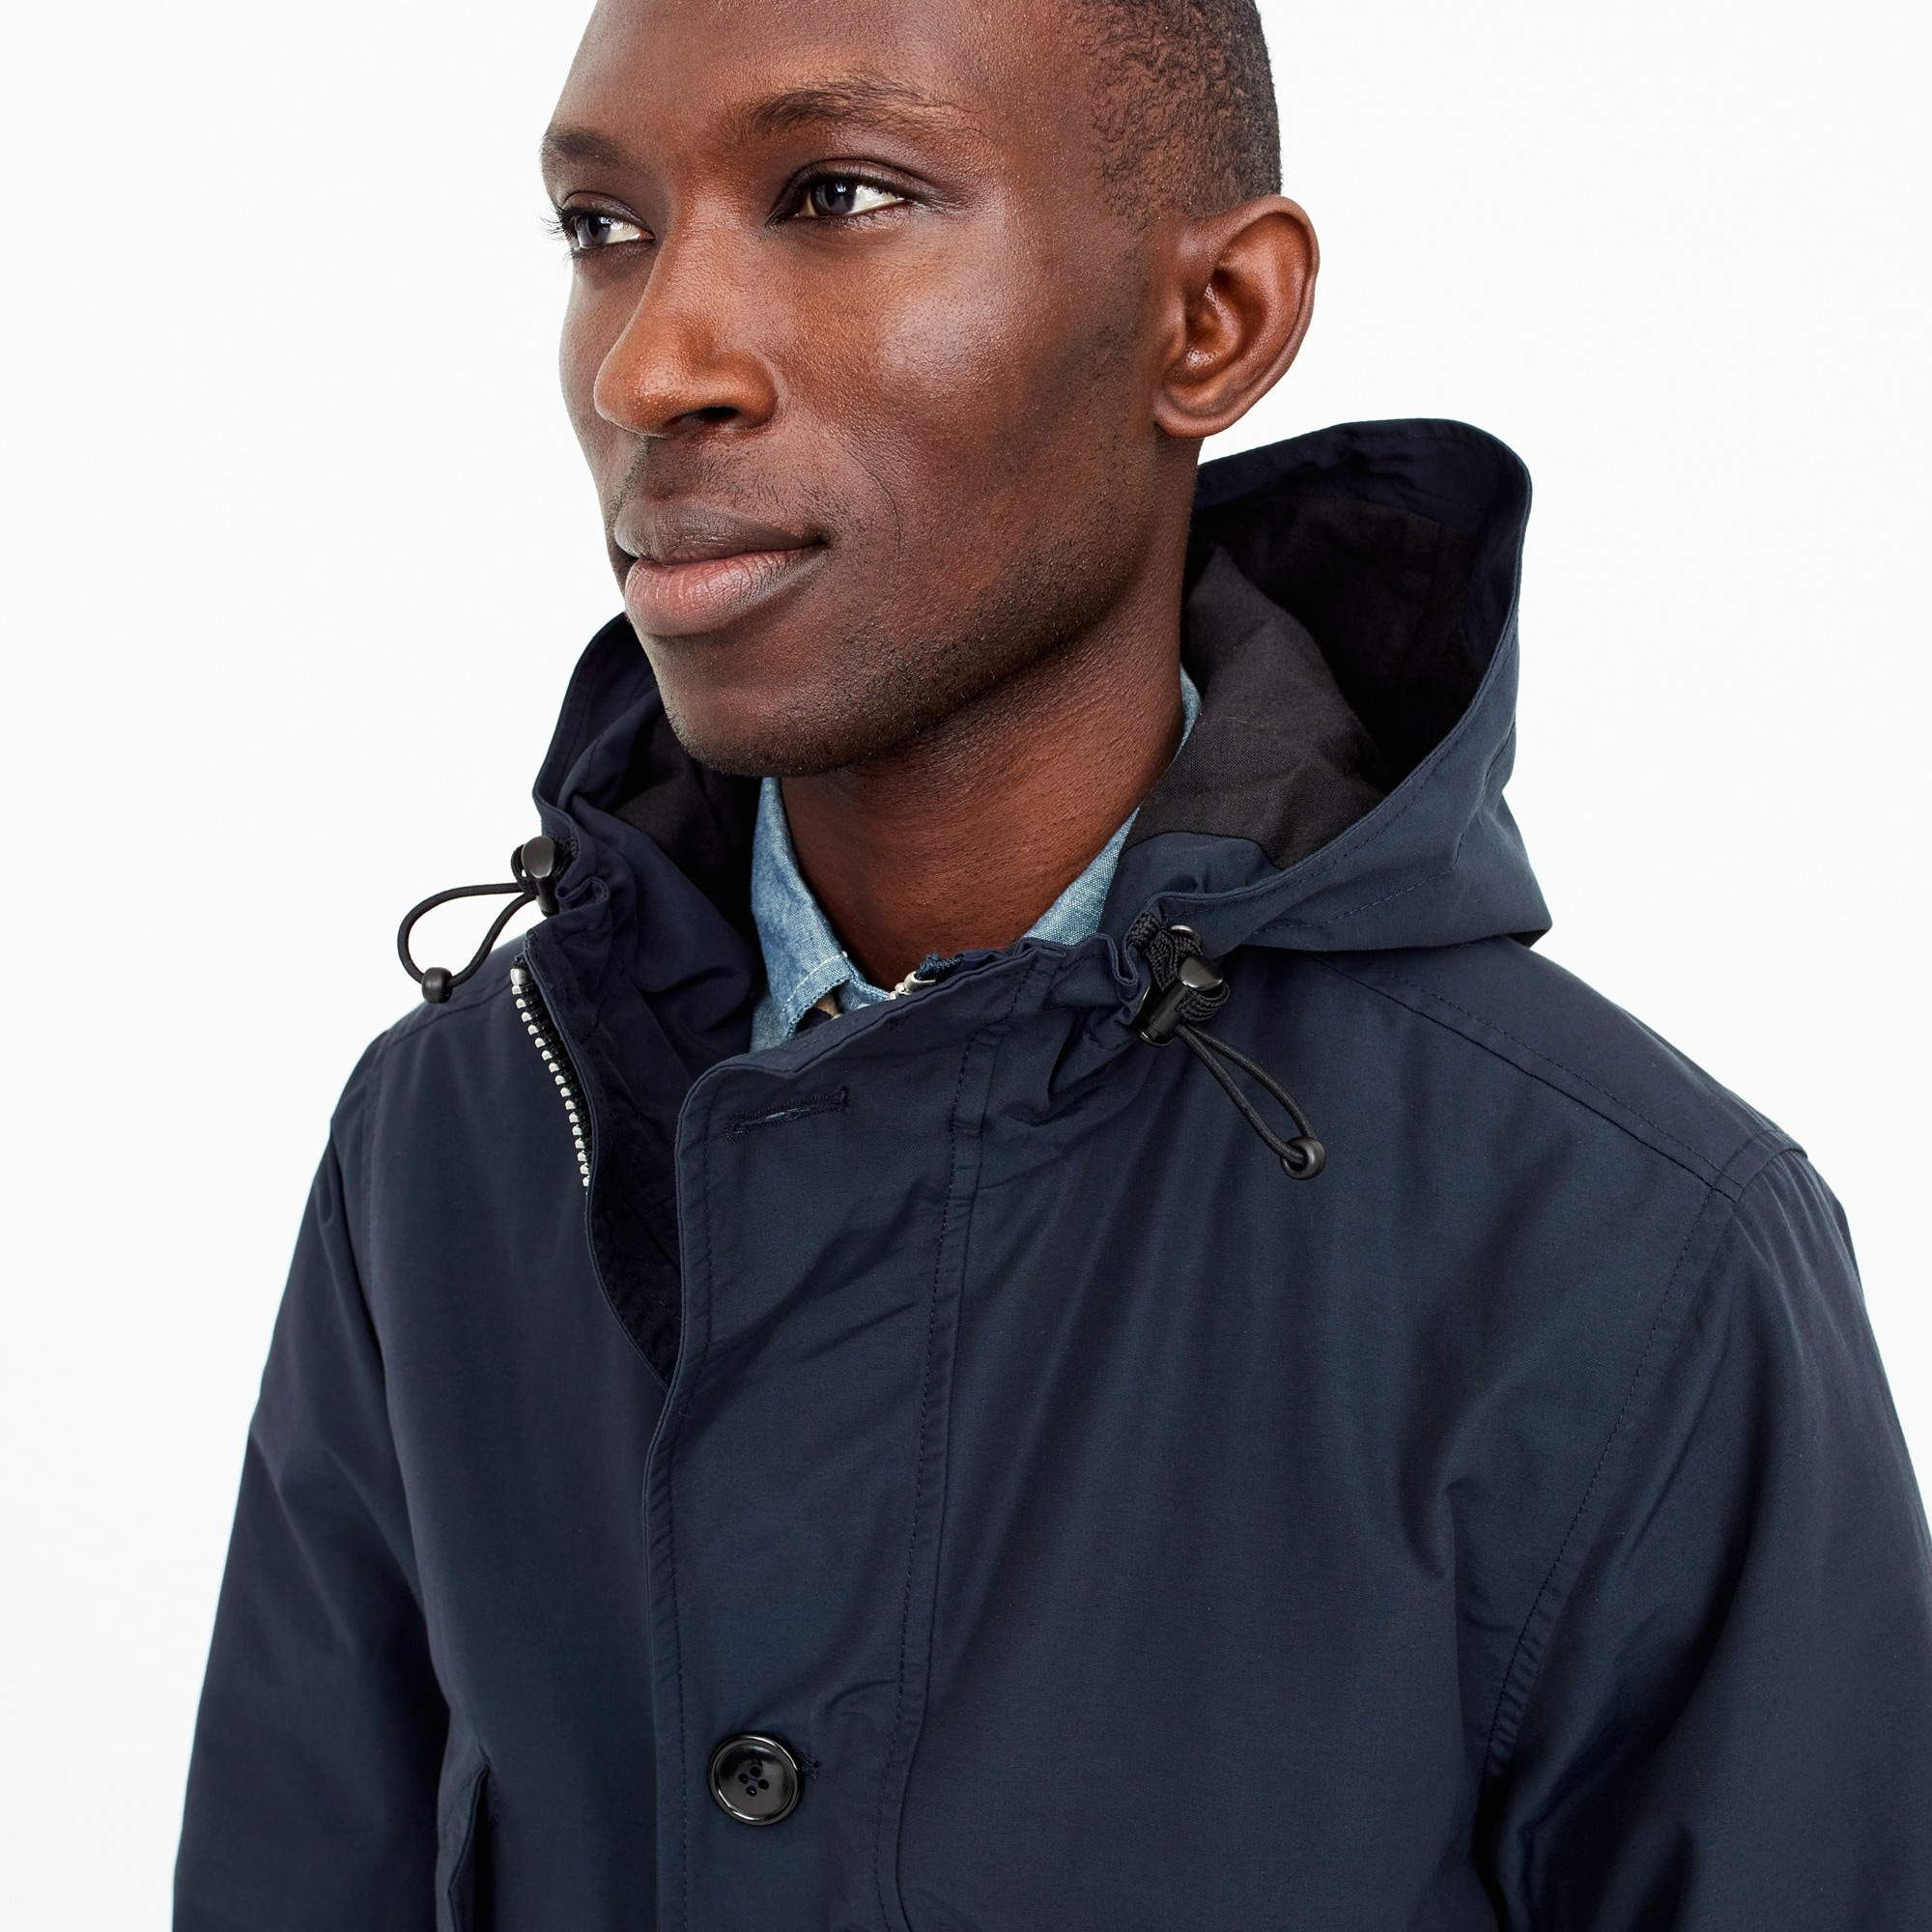 Hooded snorkel jacket